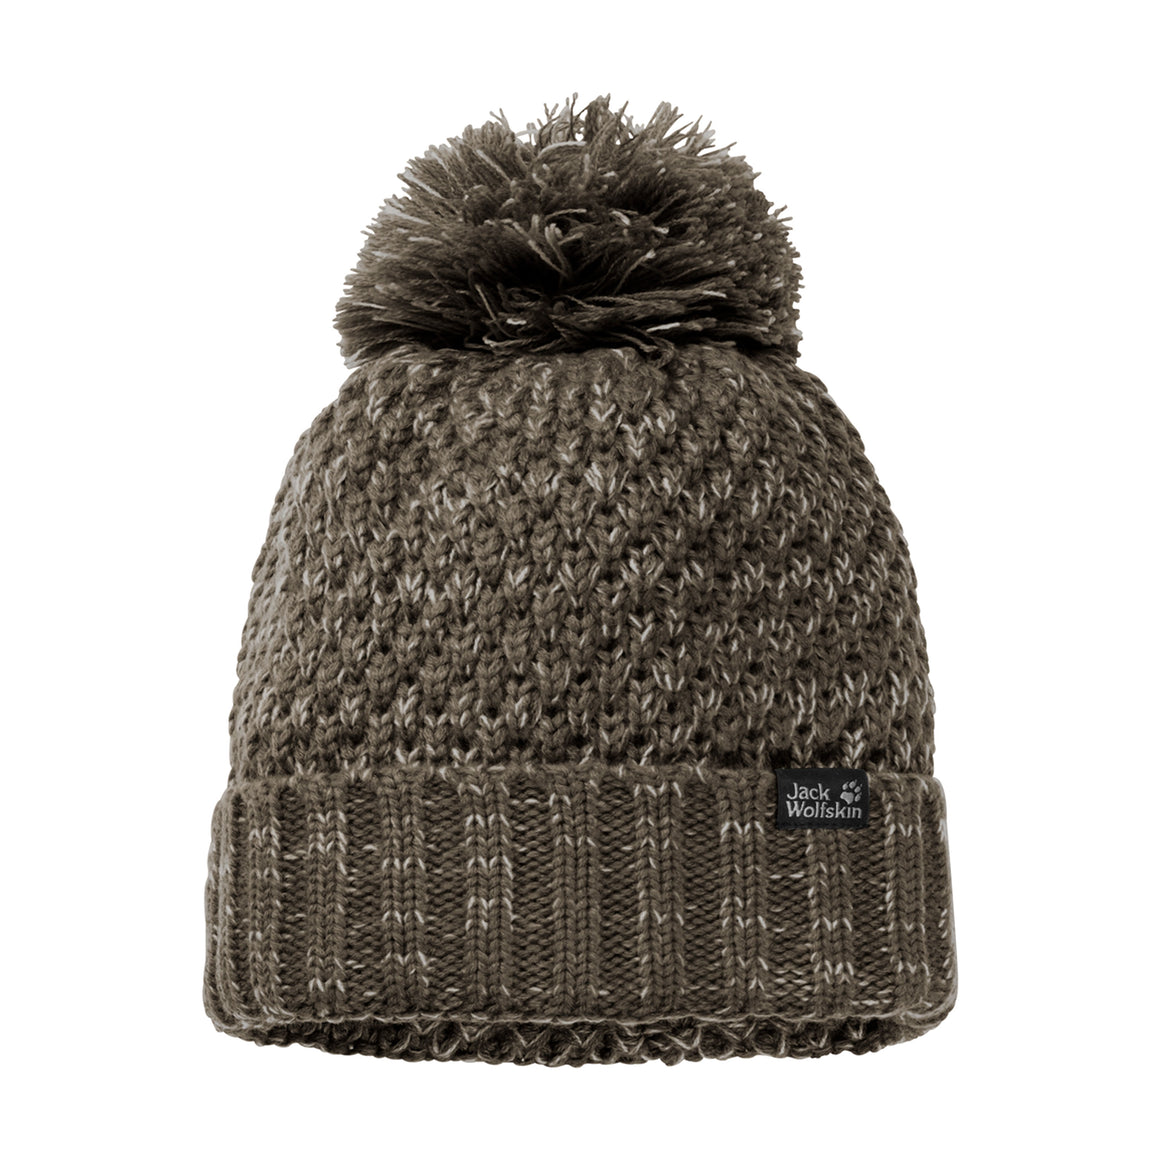 Highloft Knit Cap for Women in Granite